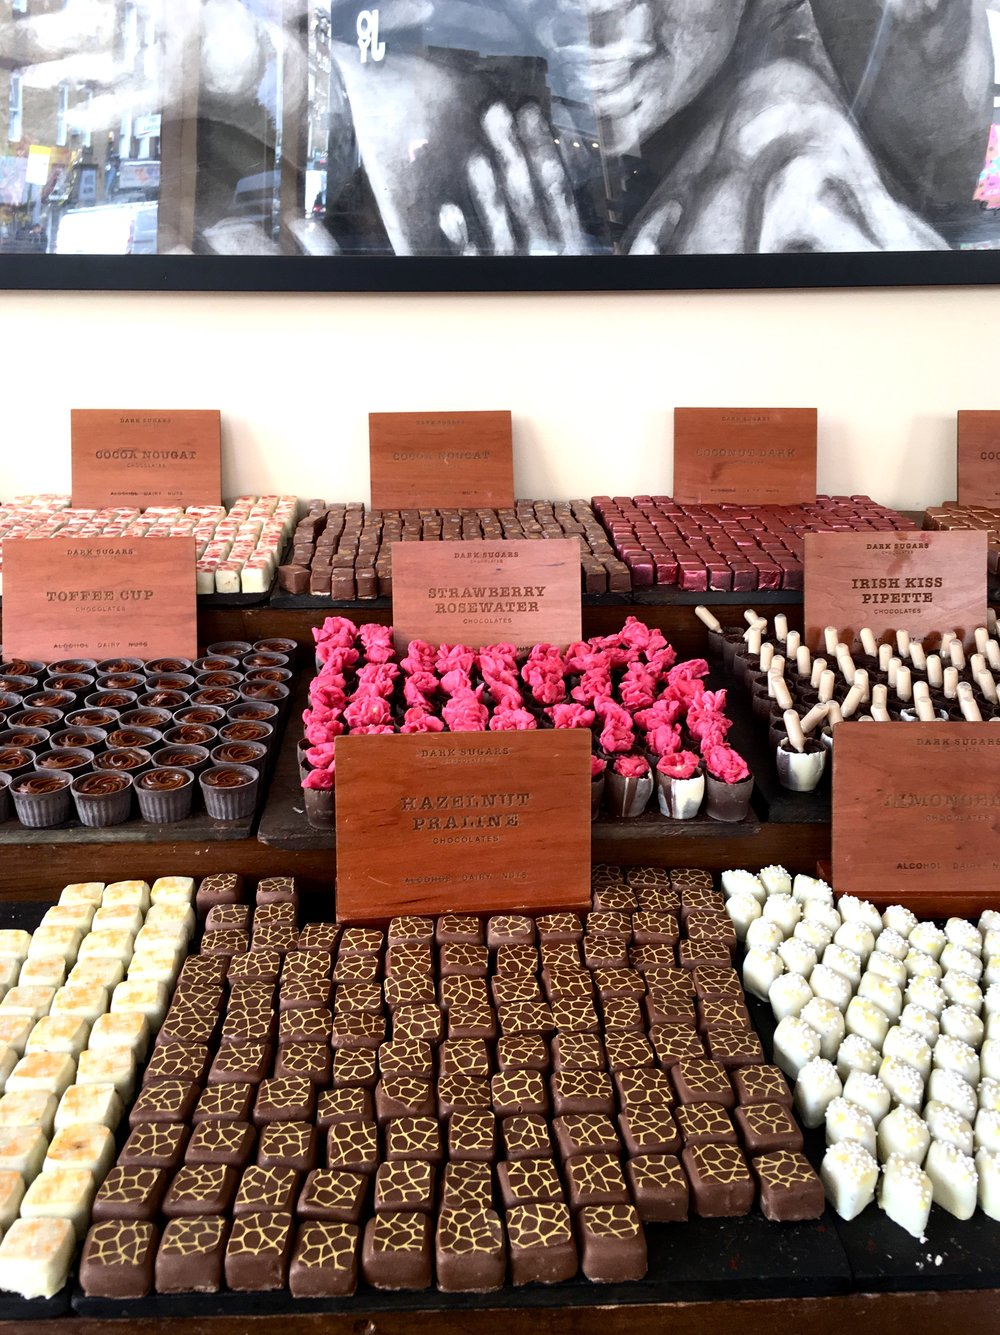 This chocolate shop on Brick Lane was nuts! We first thought they were selling bars of soap, but nope- it was chocolate!!